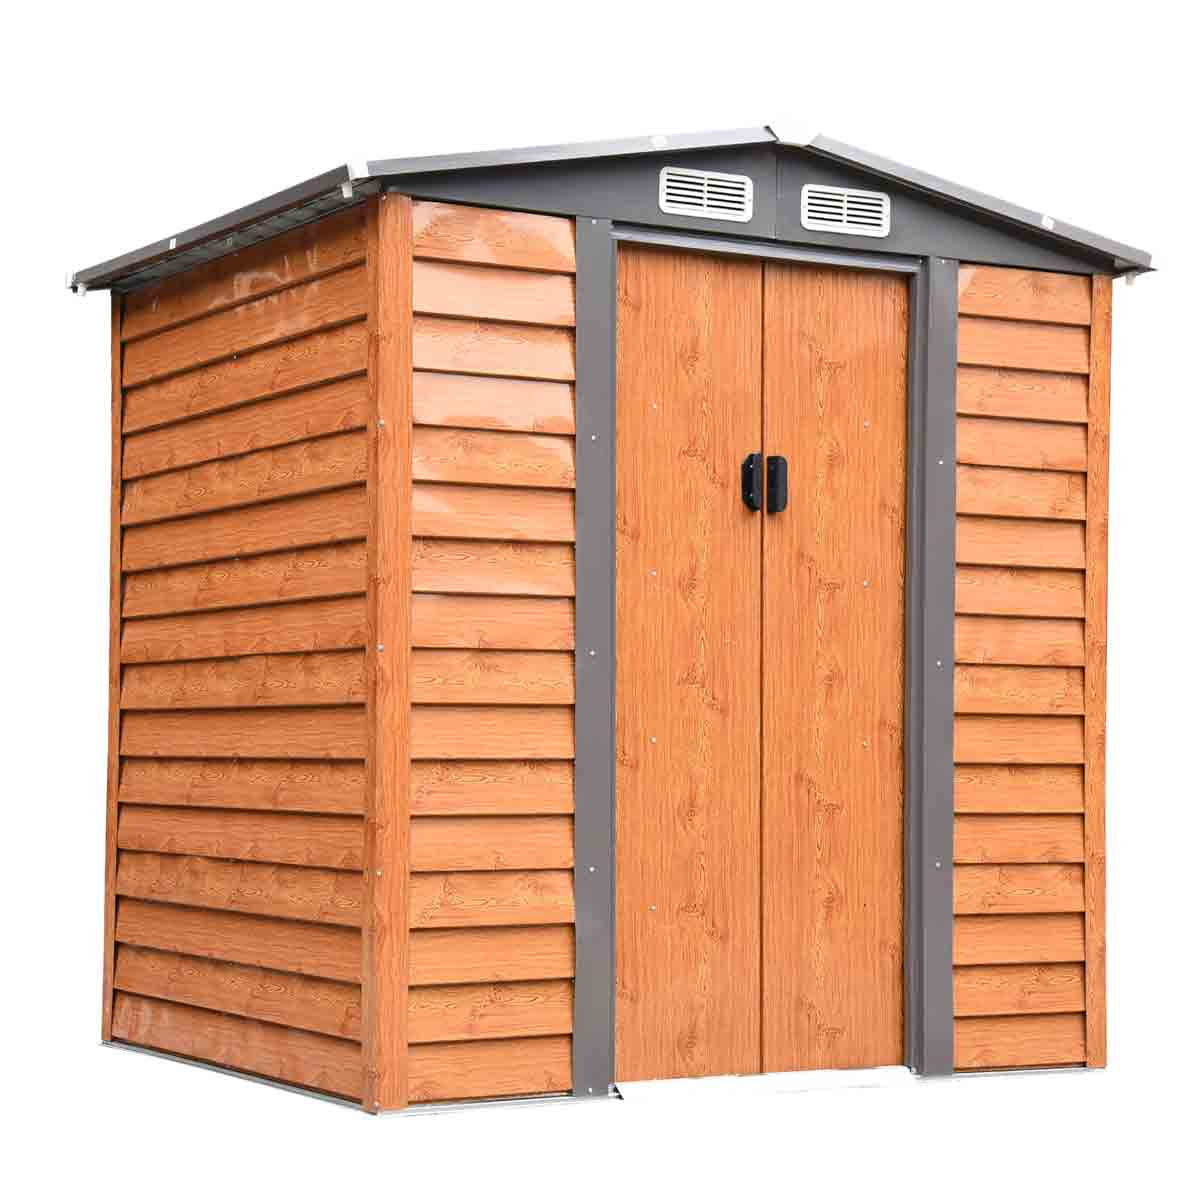 Outsunny 6' 5'' x 5' 2''Metal Wood Effect Apex Storage Shed w/ Sliding Door - Brown